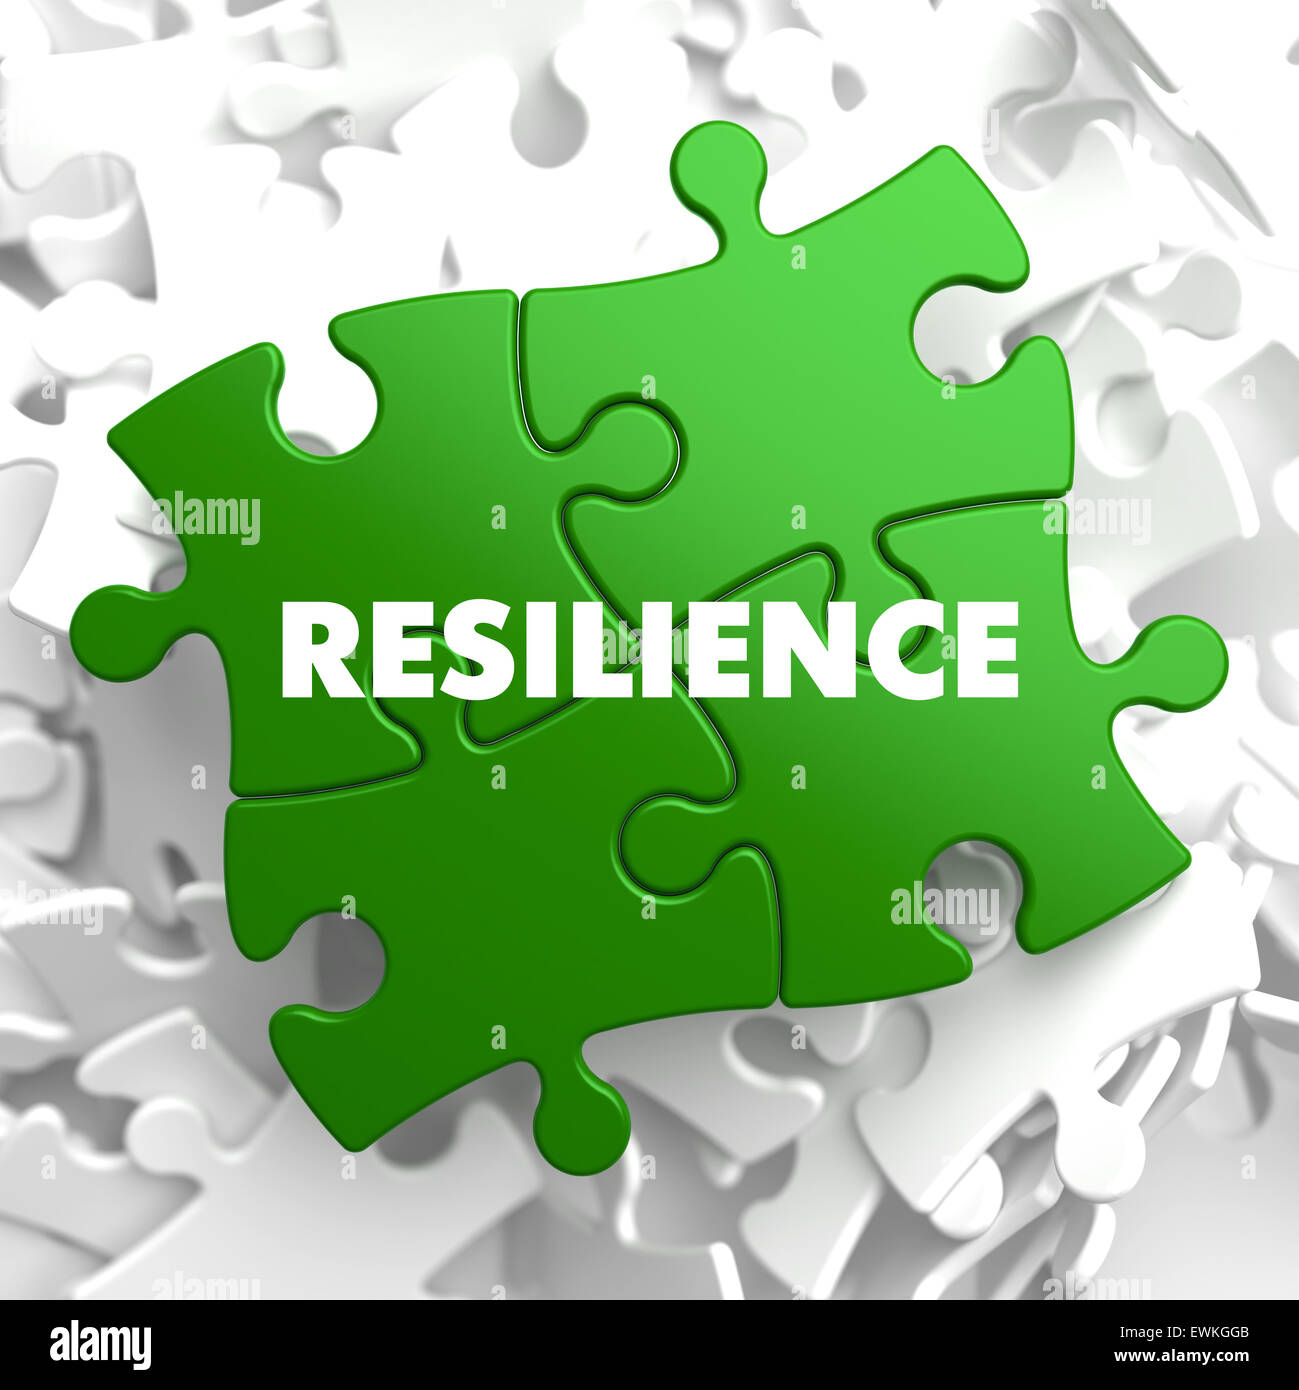 Resilience on Green Puzzle. - Stock Image